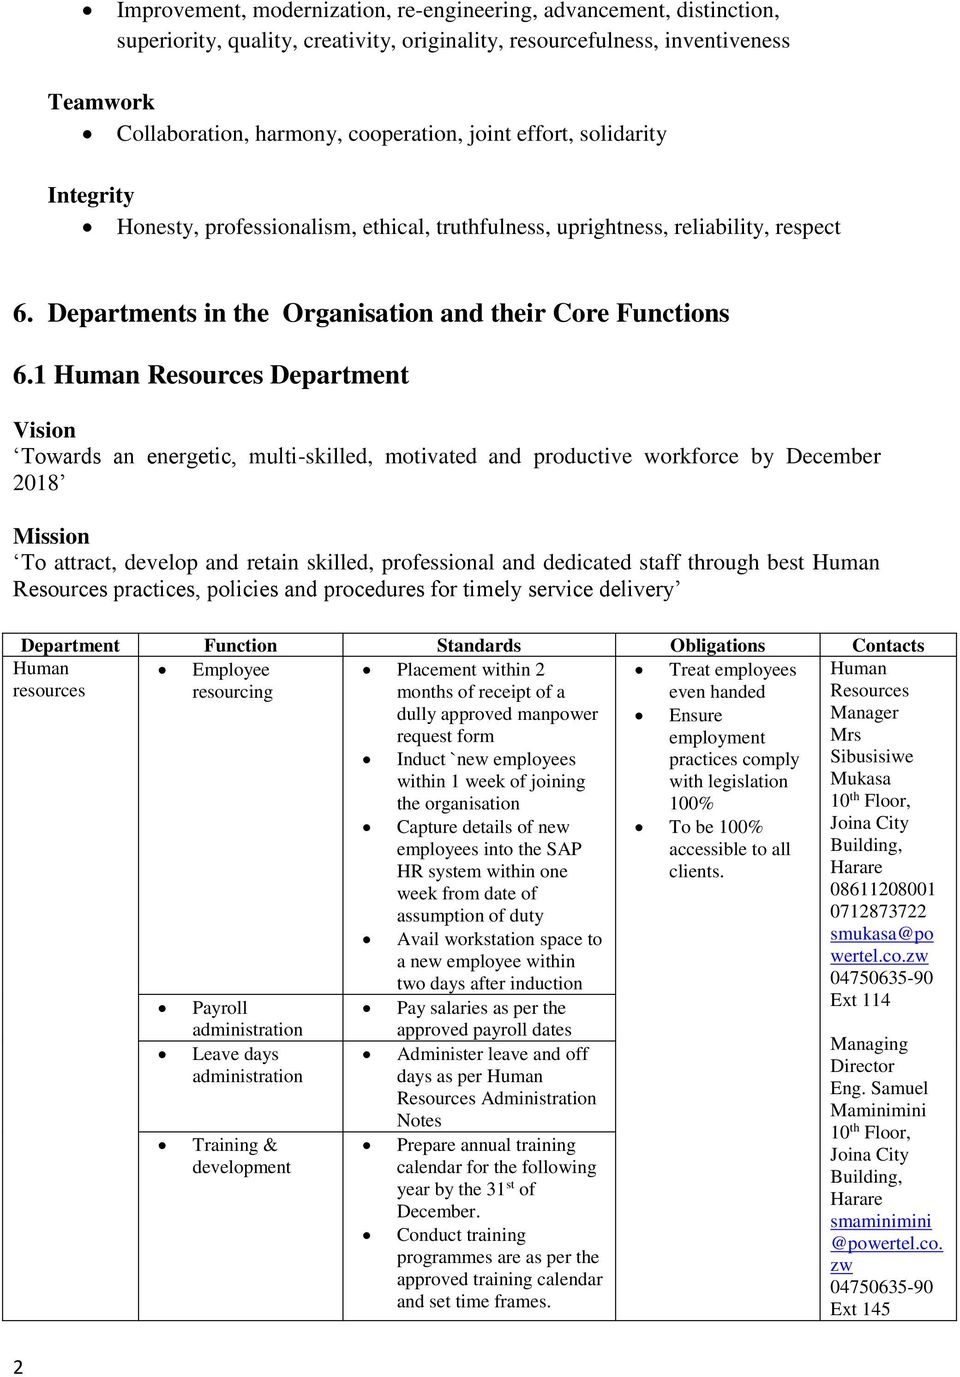 1 Human Resources Department Vision Towards an energetic, multi-skilled, motivated and productive workforce by December 2018 Mission To attract, develop and retain skilled, professional and dedicated